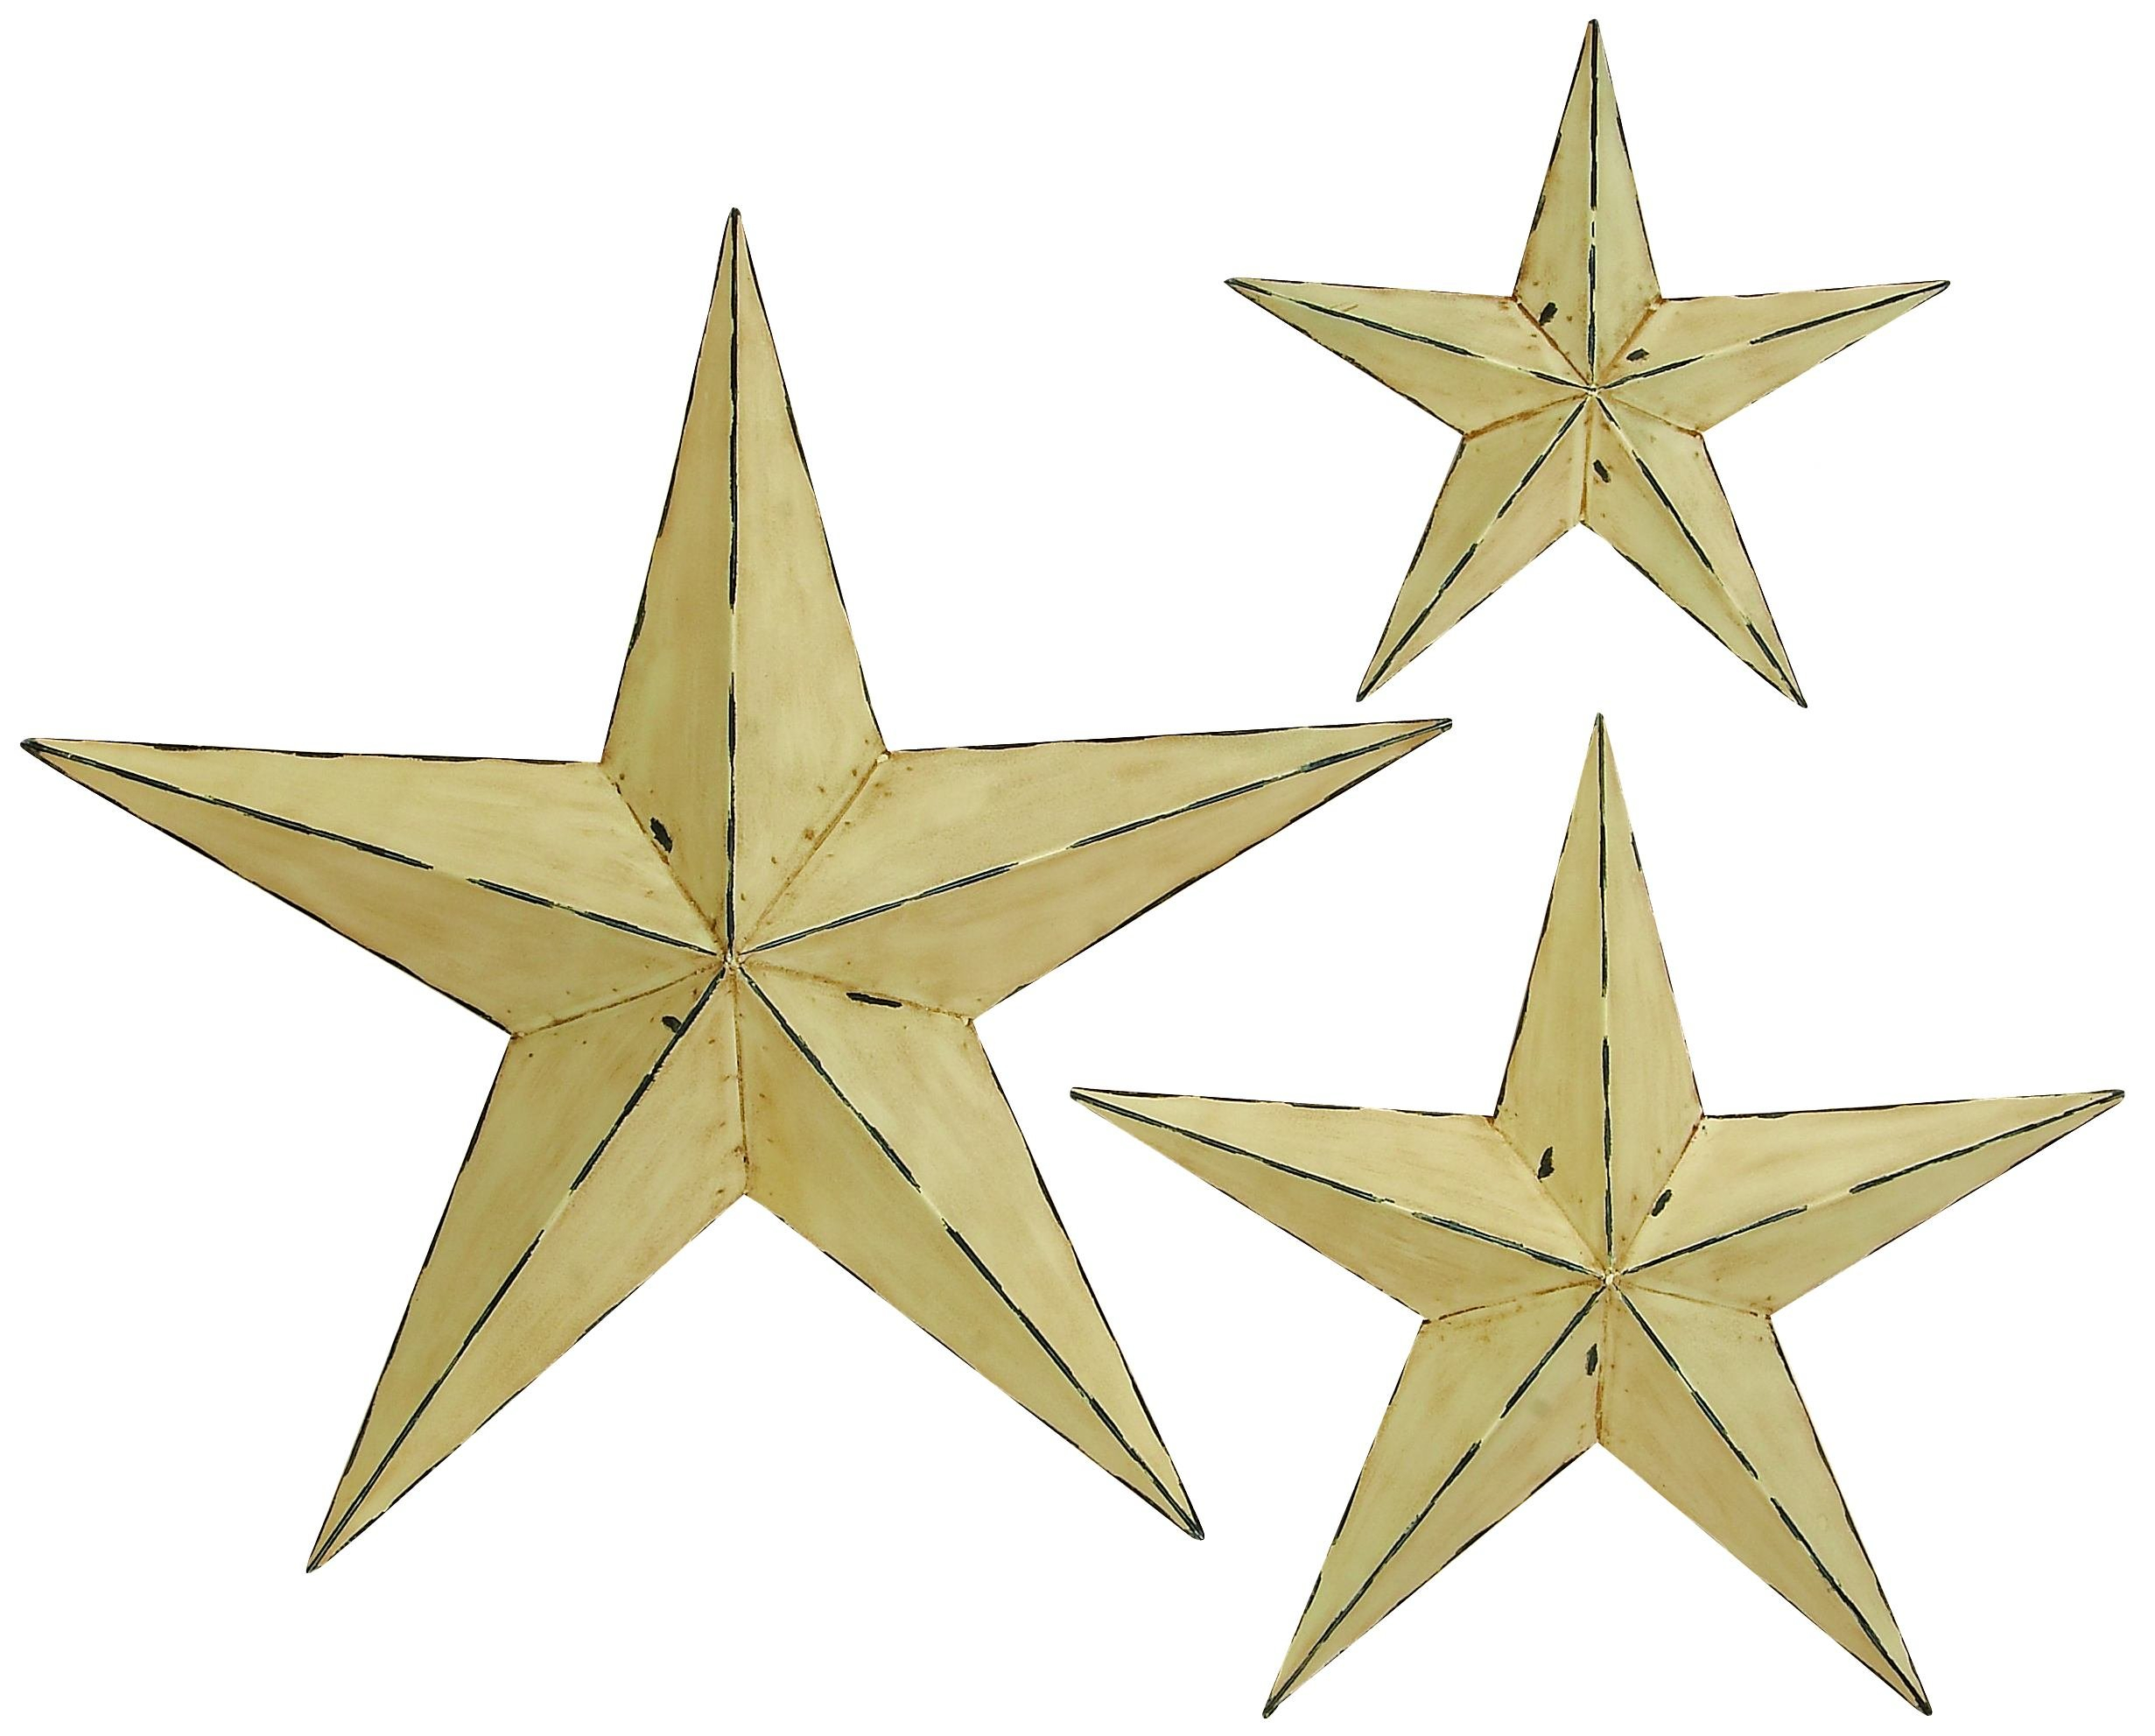 3 Piece Wall Décor Set Throughout 3 Piece Star Wall Decor Sets (View 17 of 30)